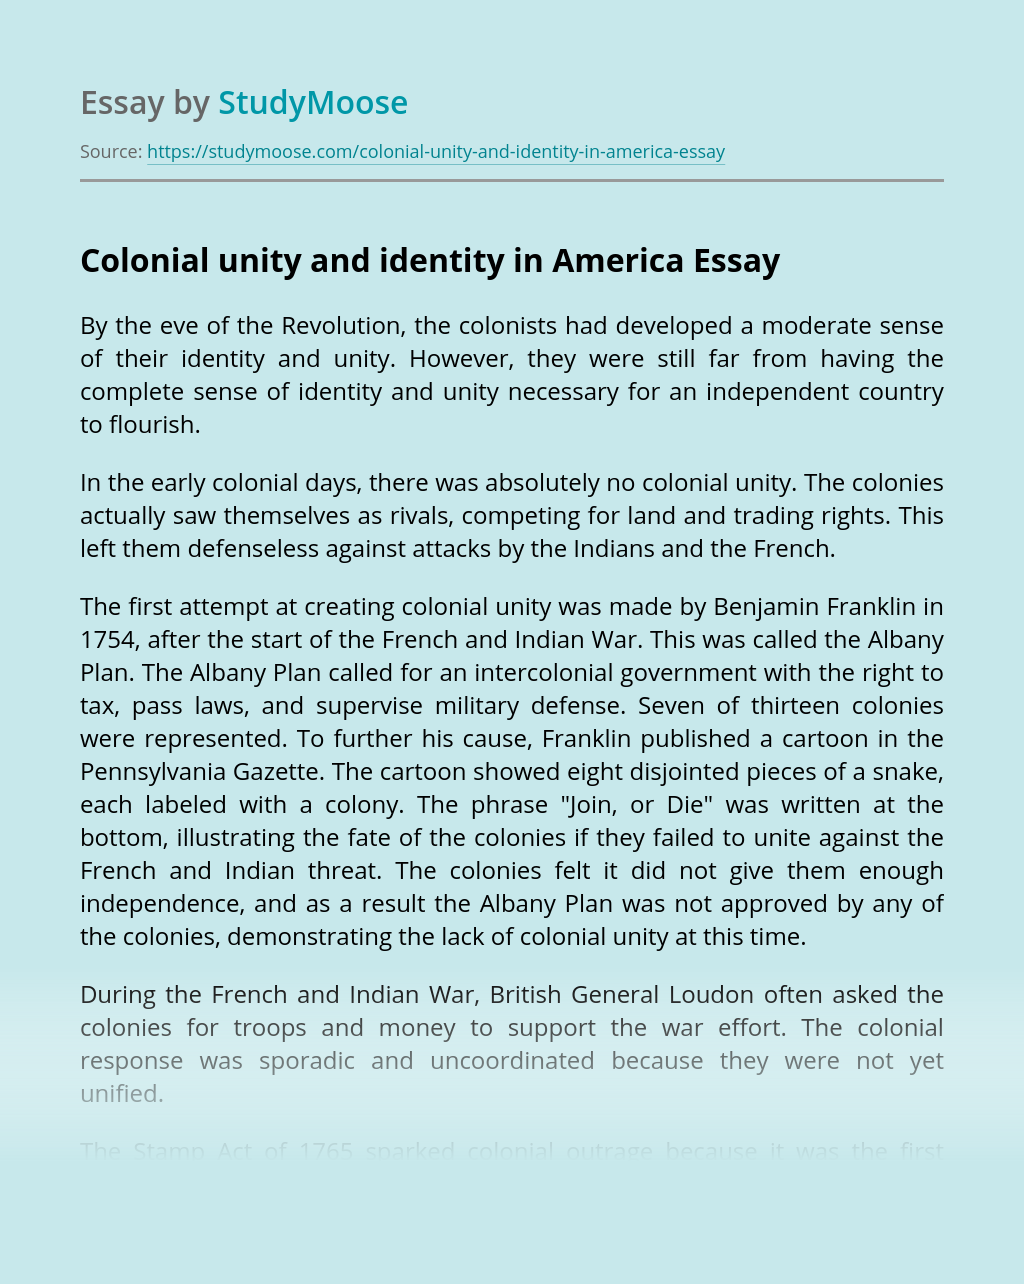 Colonial unity and identity in America